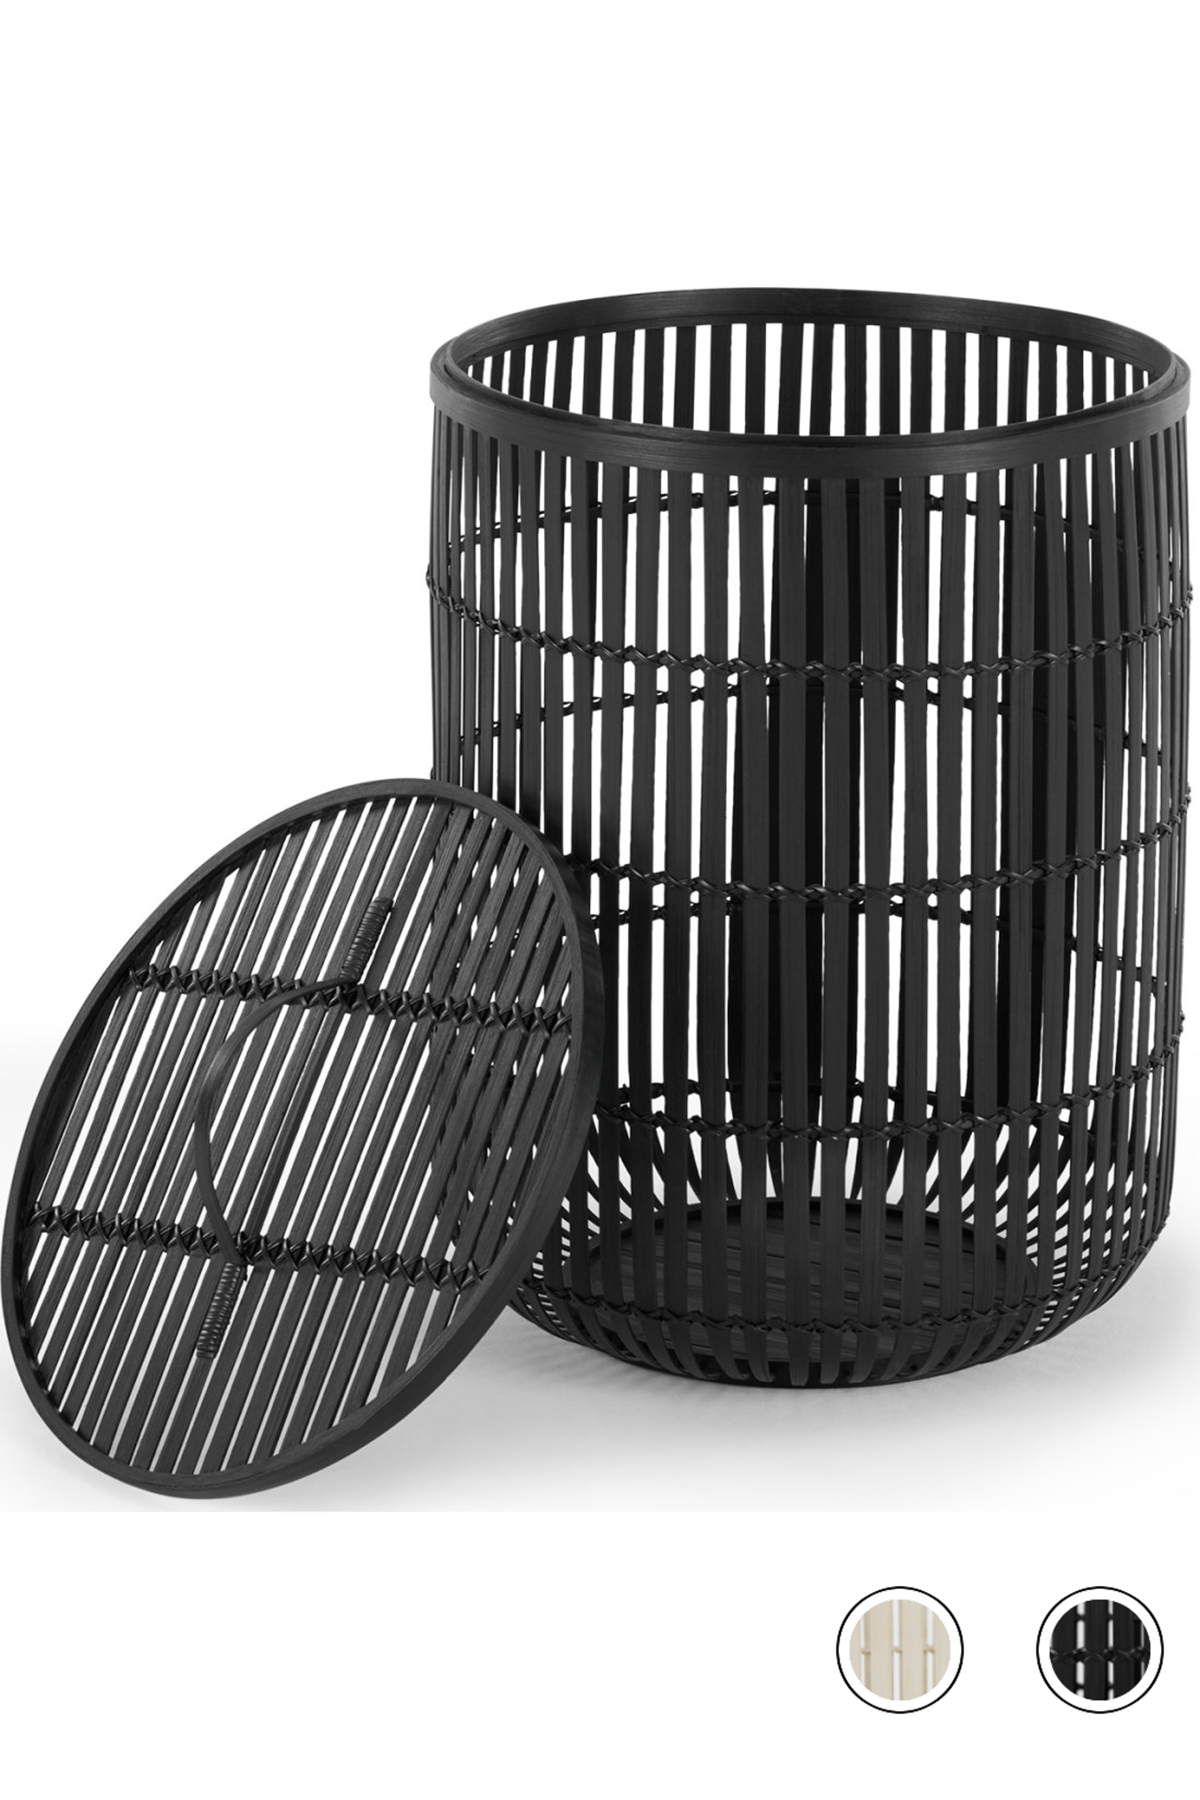 Made Black Laundry Basket In 2020 Black Laundry Basket Laundry Basket With Lid Woven Laundry Basket